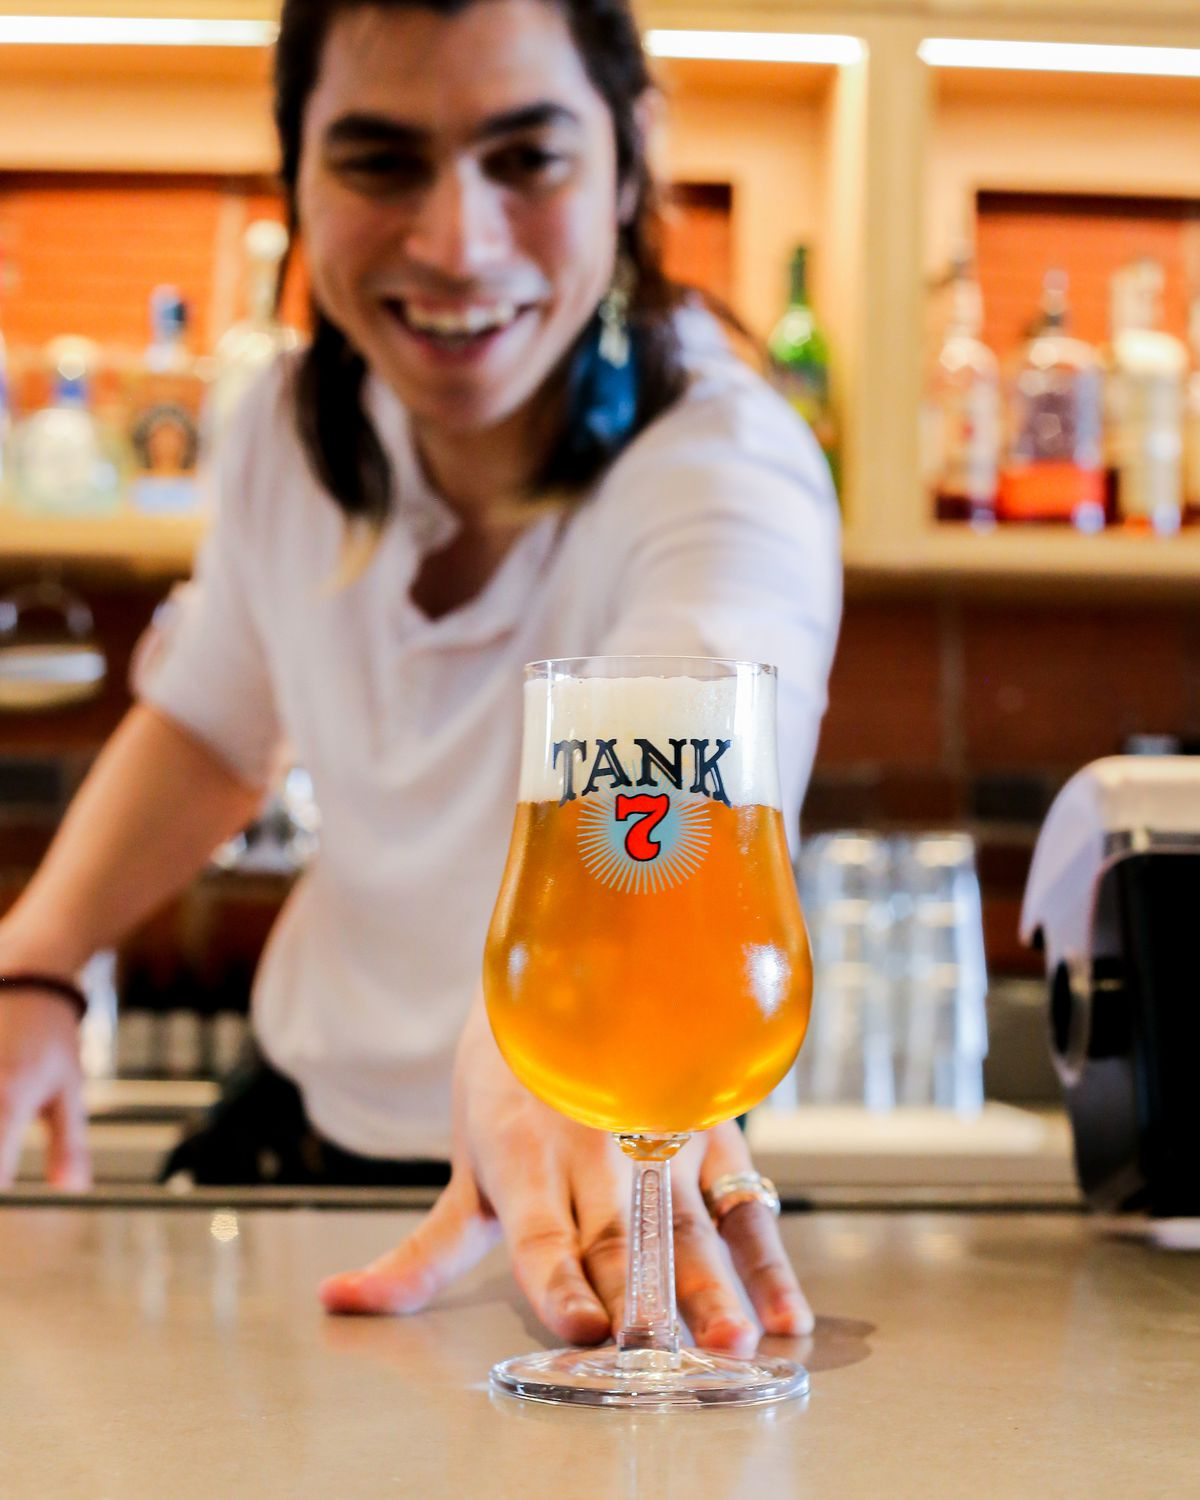 A male bartender slides forward a Tank 7 beer tulip towards the camera.